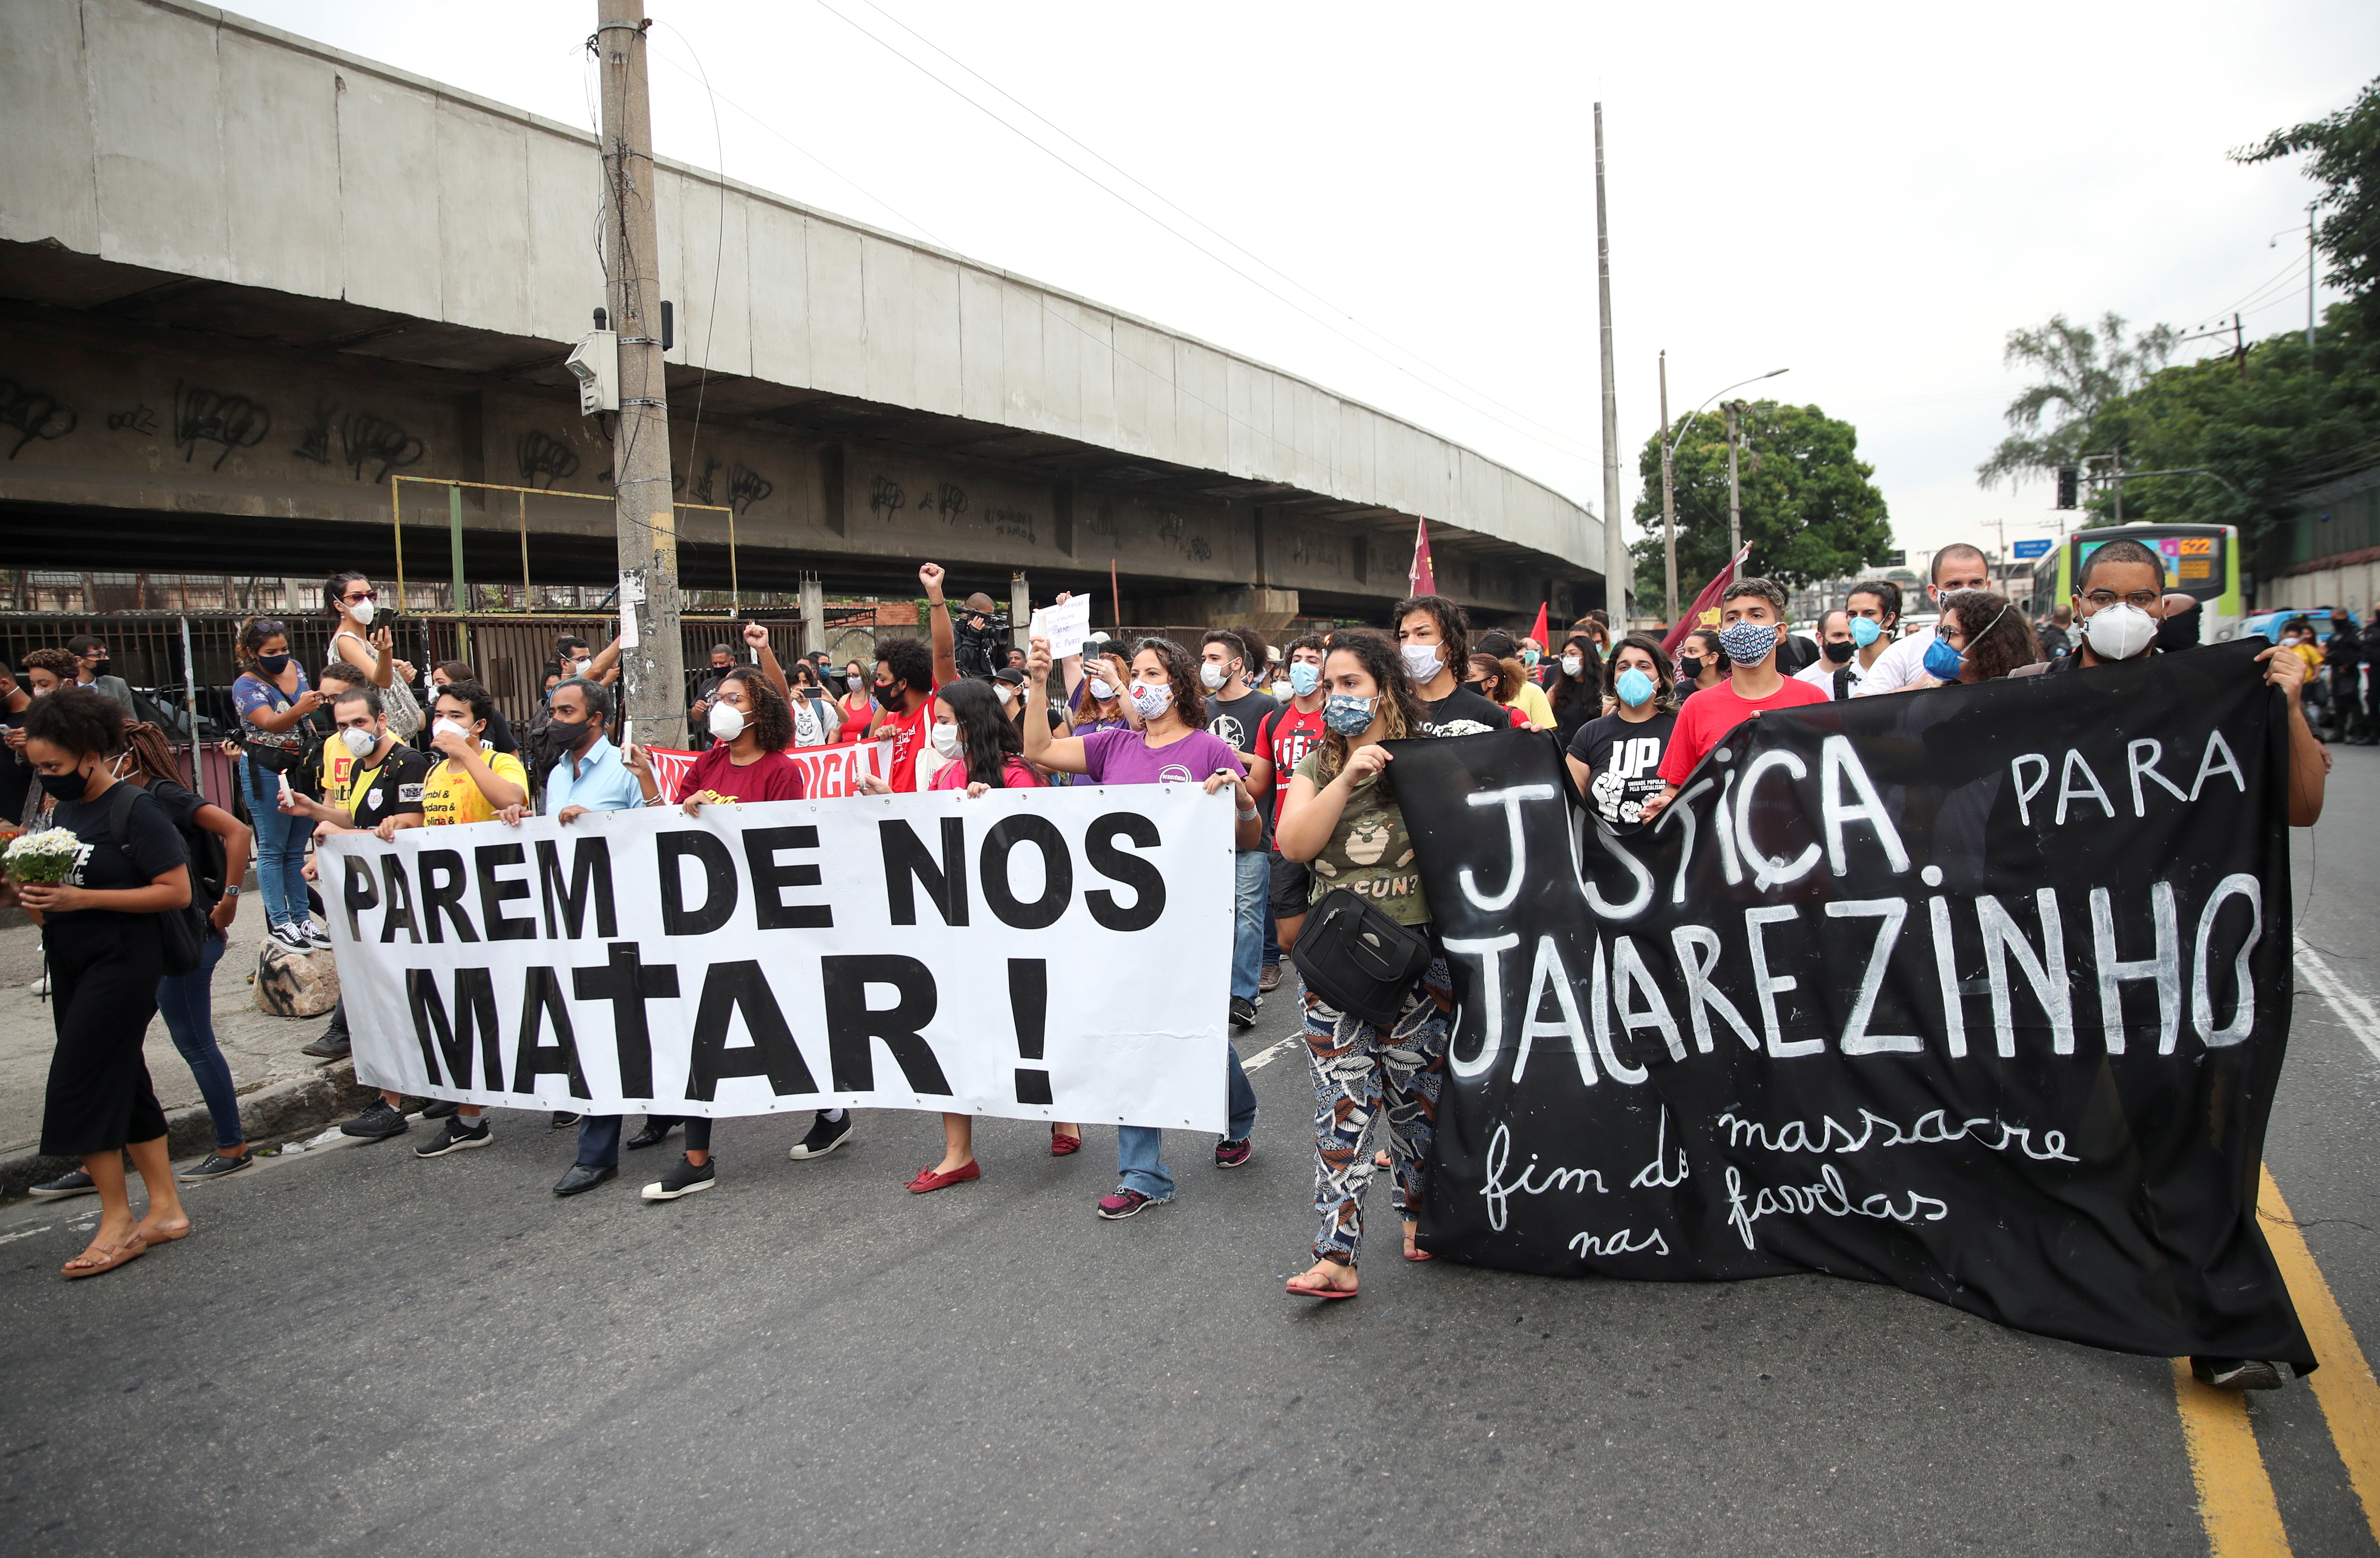 People attend a protest against police violence outside Jacarezinho slum after a police operation which resulted in 25 deaths in Rio de Janeiro, Brazil, May 7, 2021. Banners read: